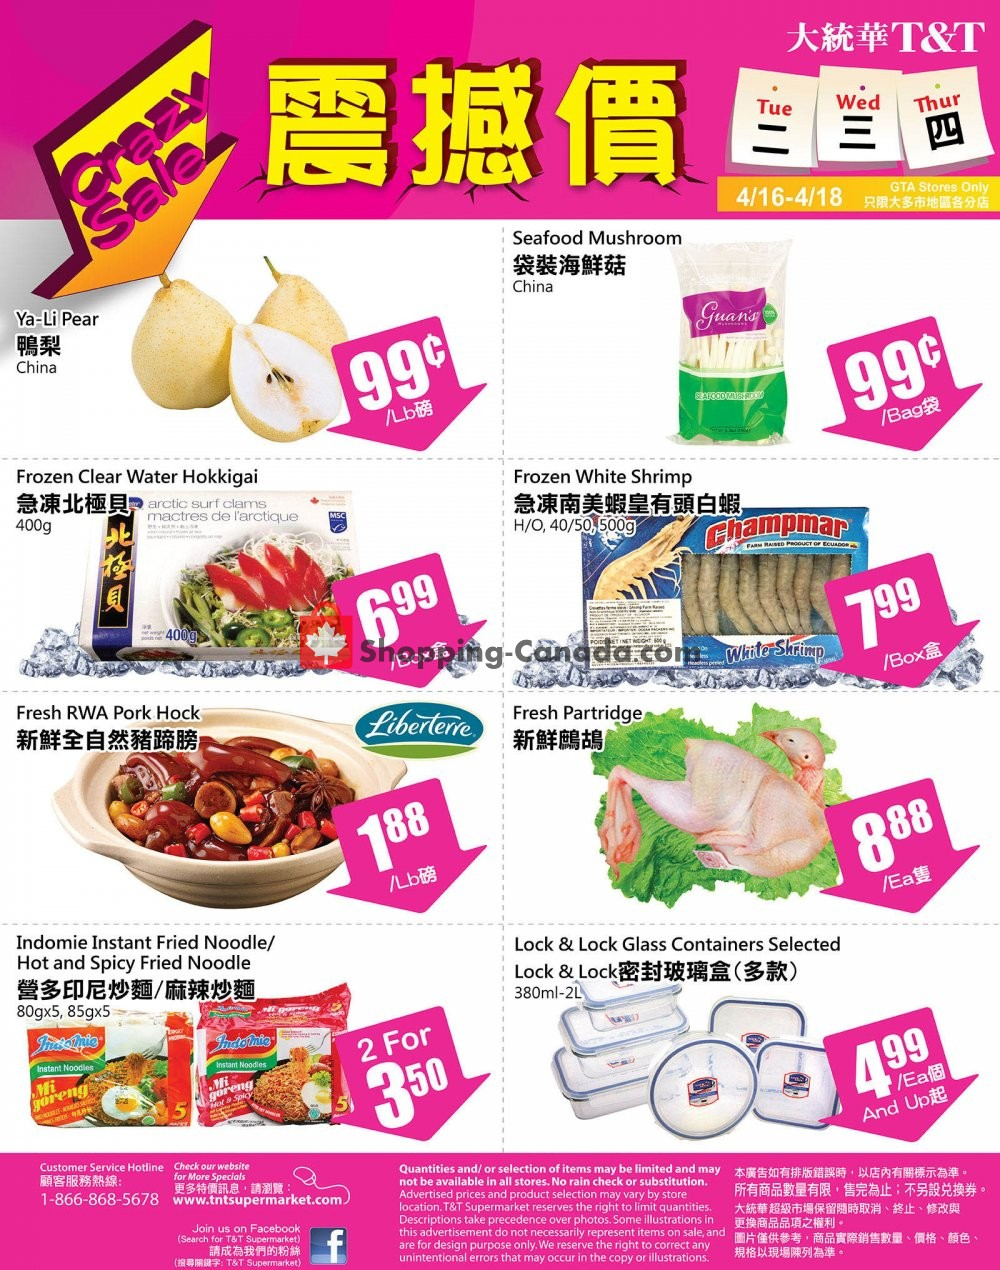 Flyer T&T Supermarket Canada - from Tuesday April 16, 2019 to Thursday April 18, 2019